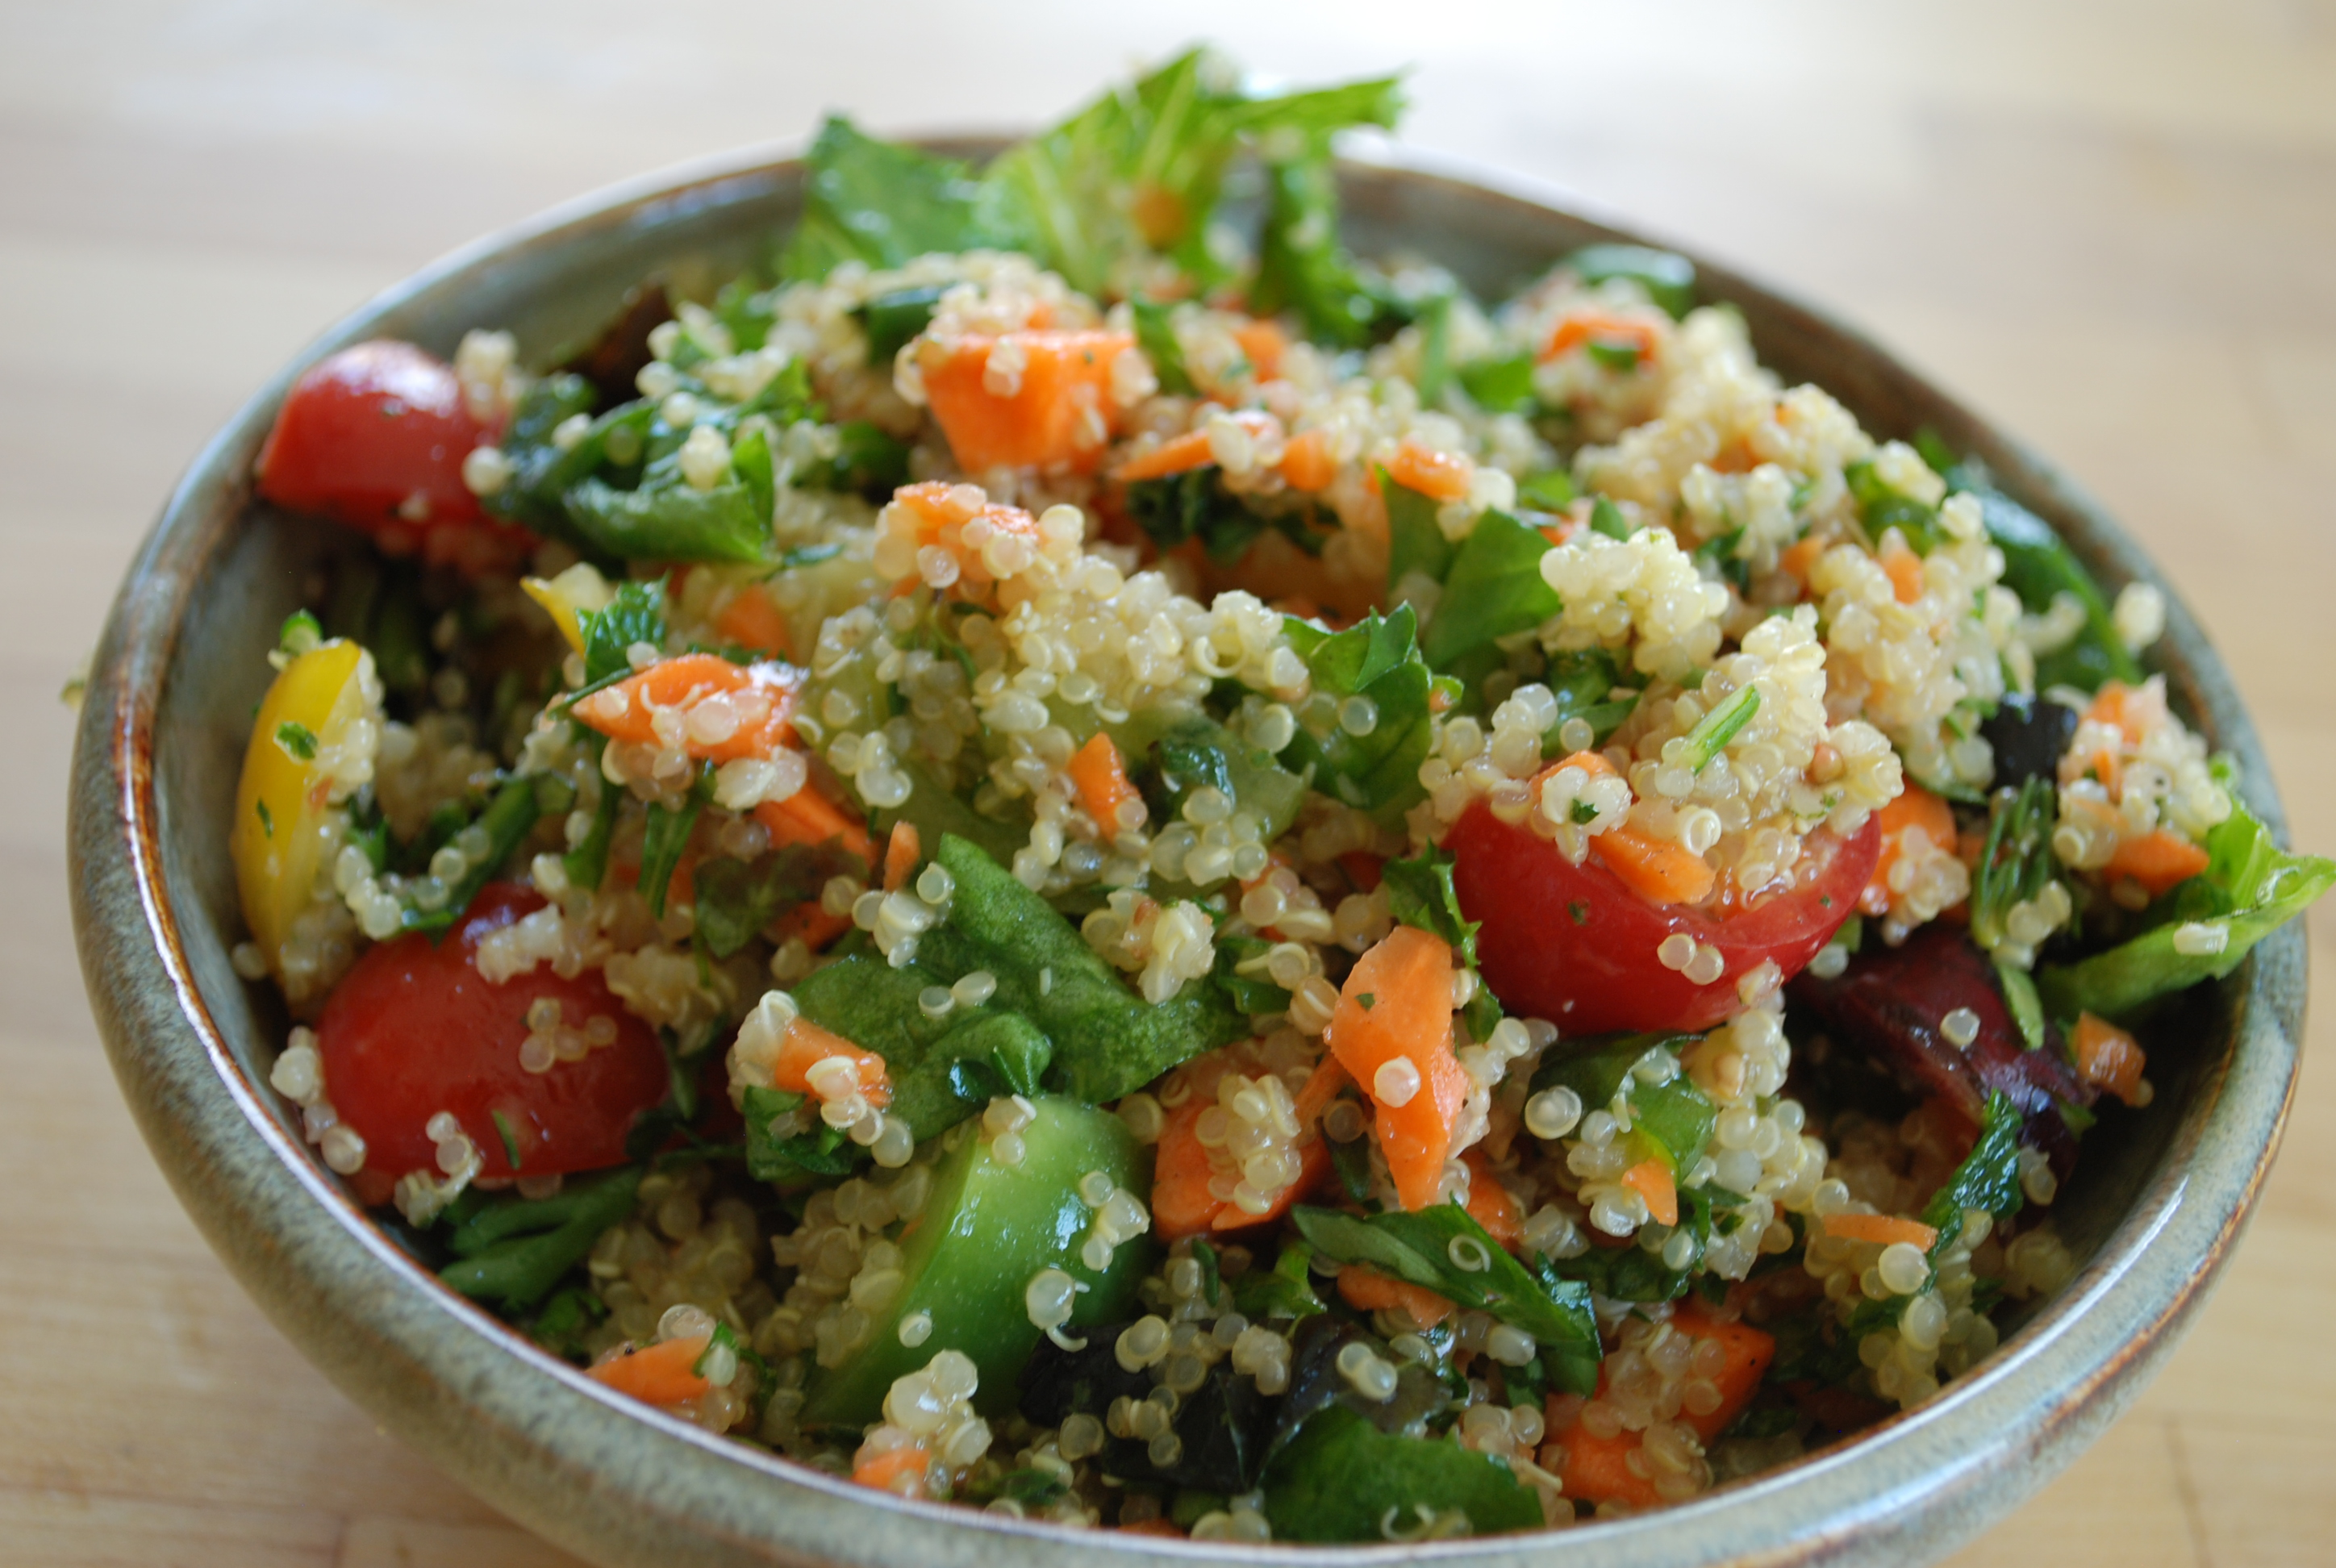 My Other Favorite Way To Eat It Is To Throw In A Half A Cup Of Cooked Quinoa  Into Any Salad It Adds Fun Texture, But Because Of Its Mild Taste,